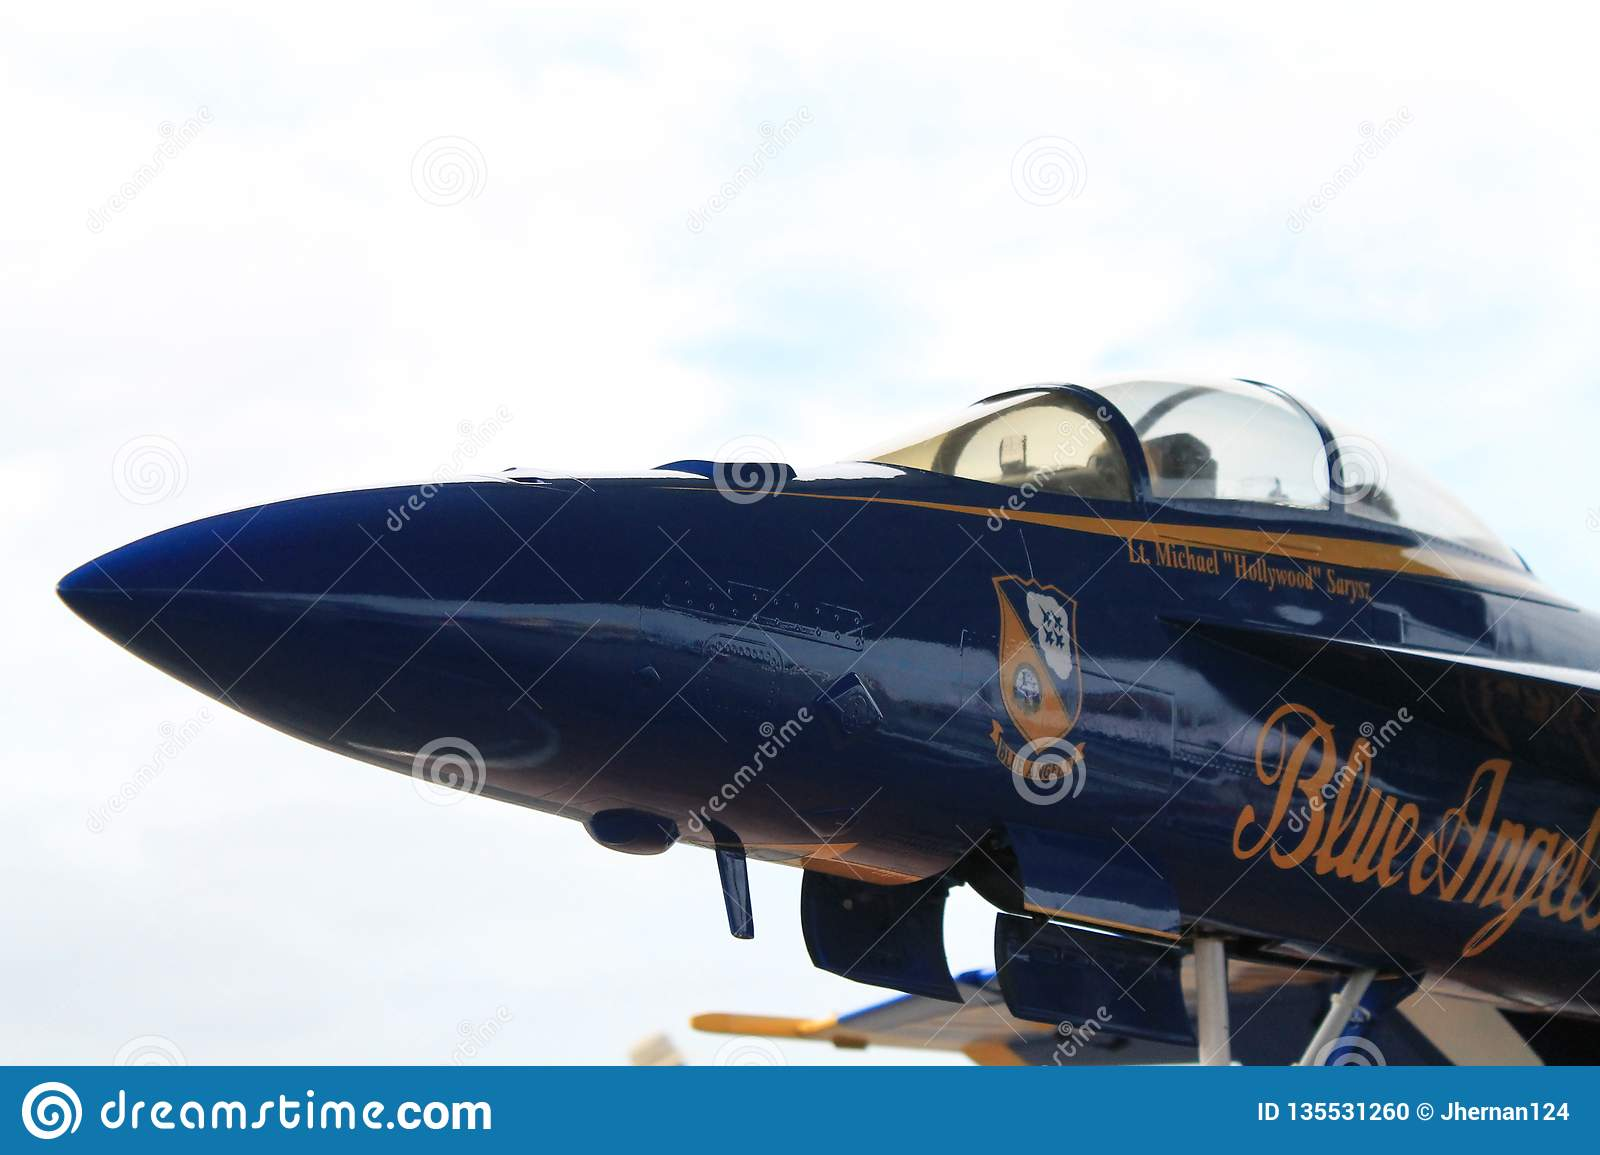 US Navy Blue Angels Editorial Image | CartoonDealer.com ...